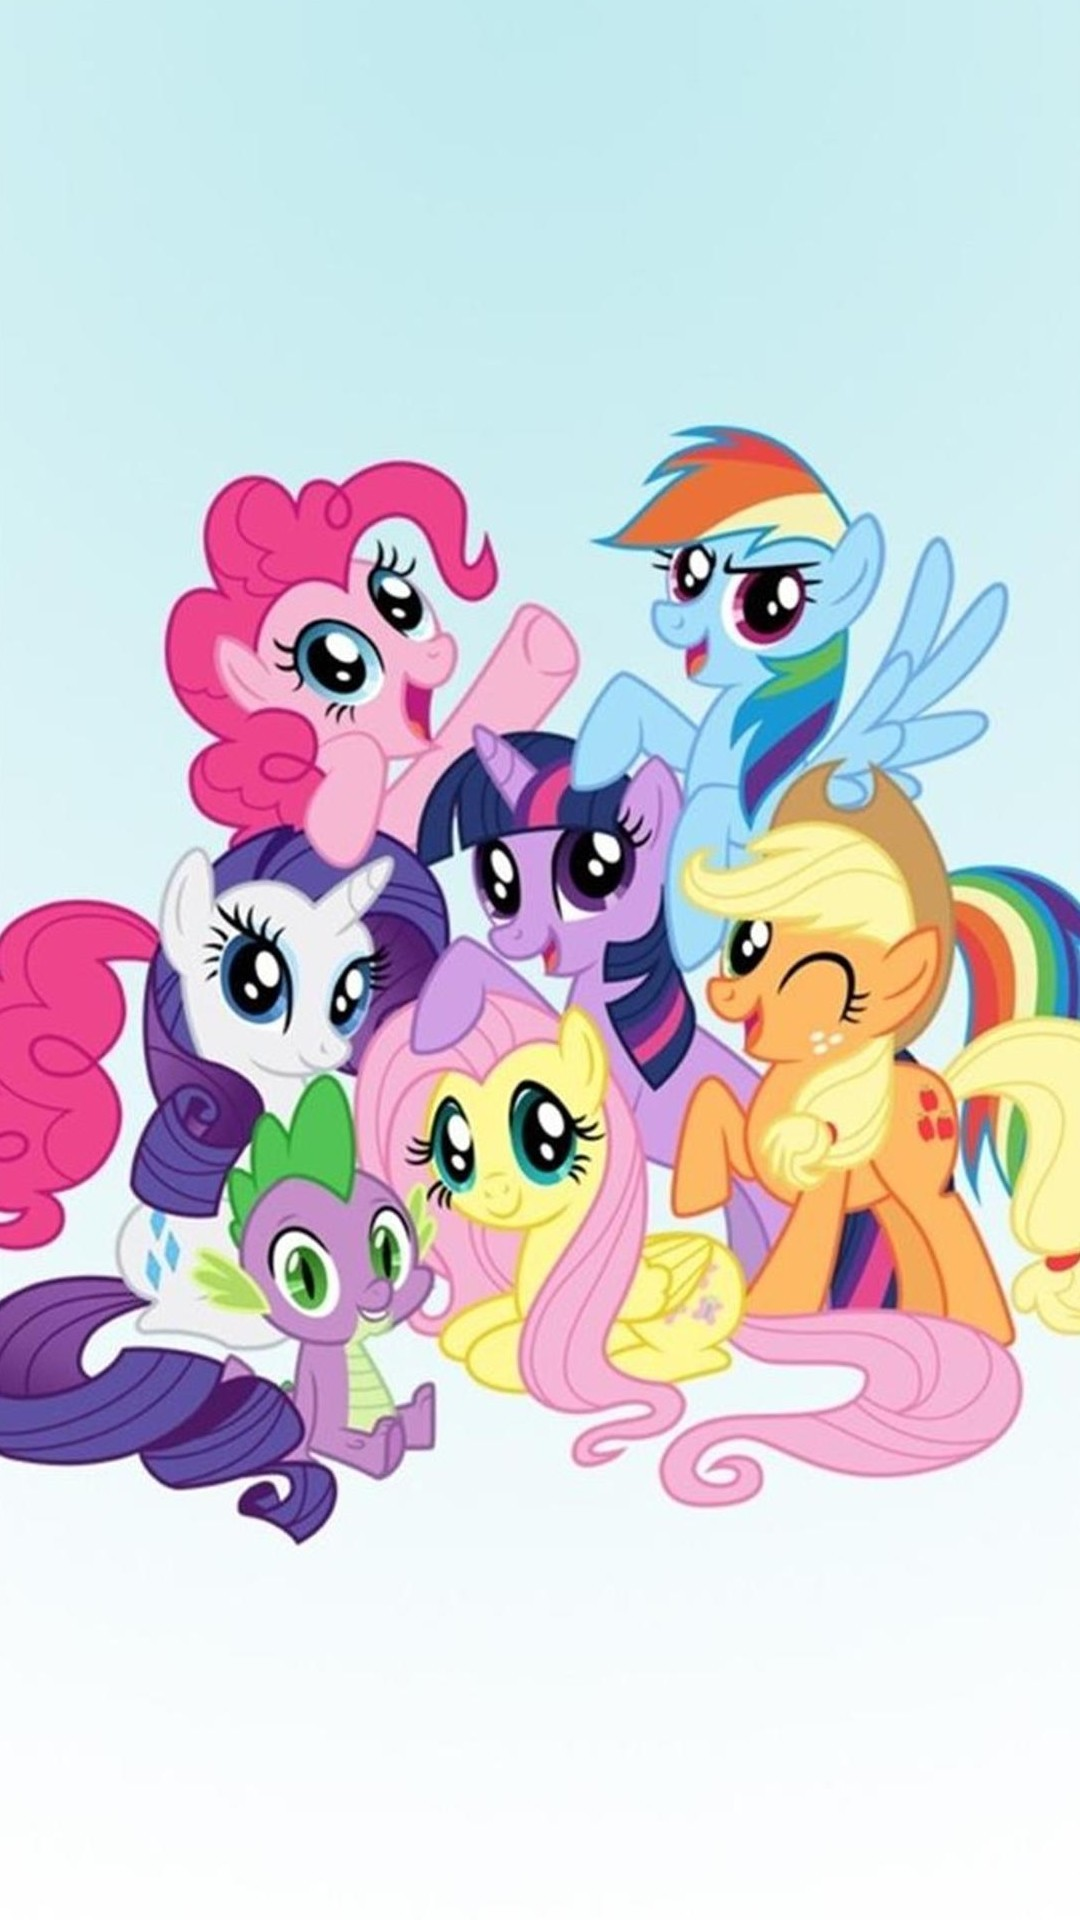 My-Little-Pony-Wallpapers-my-little-pony-friendship-is-magic-34795667-2560-1600.png  (2560×1600) | my little pony | Pinterest | Pony and MLP